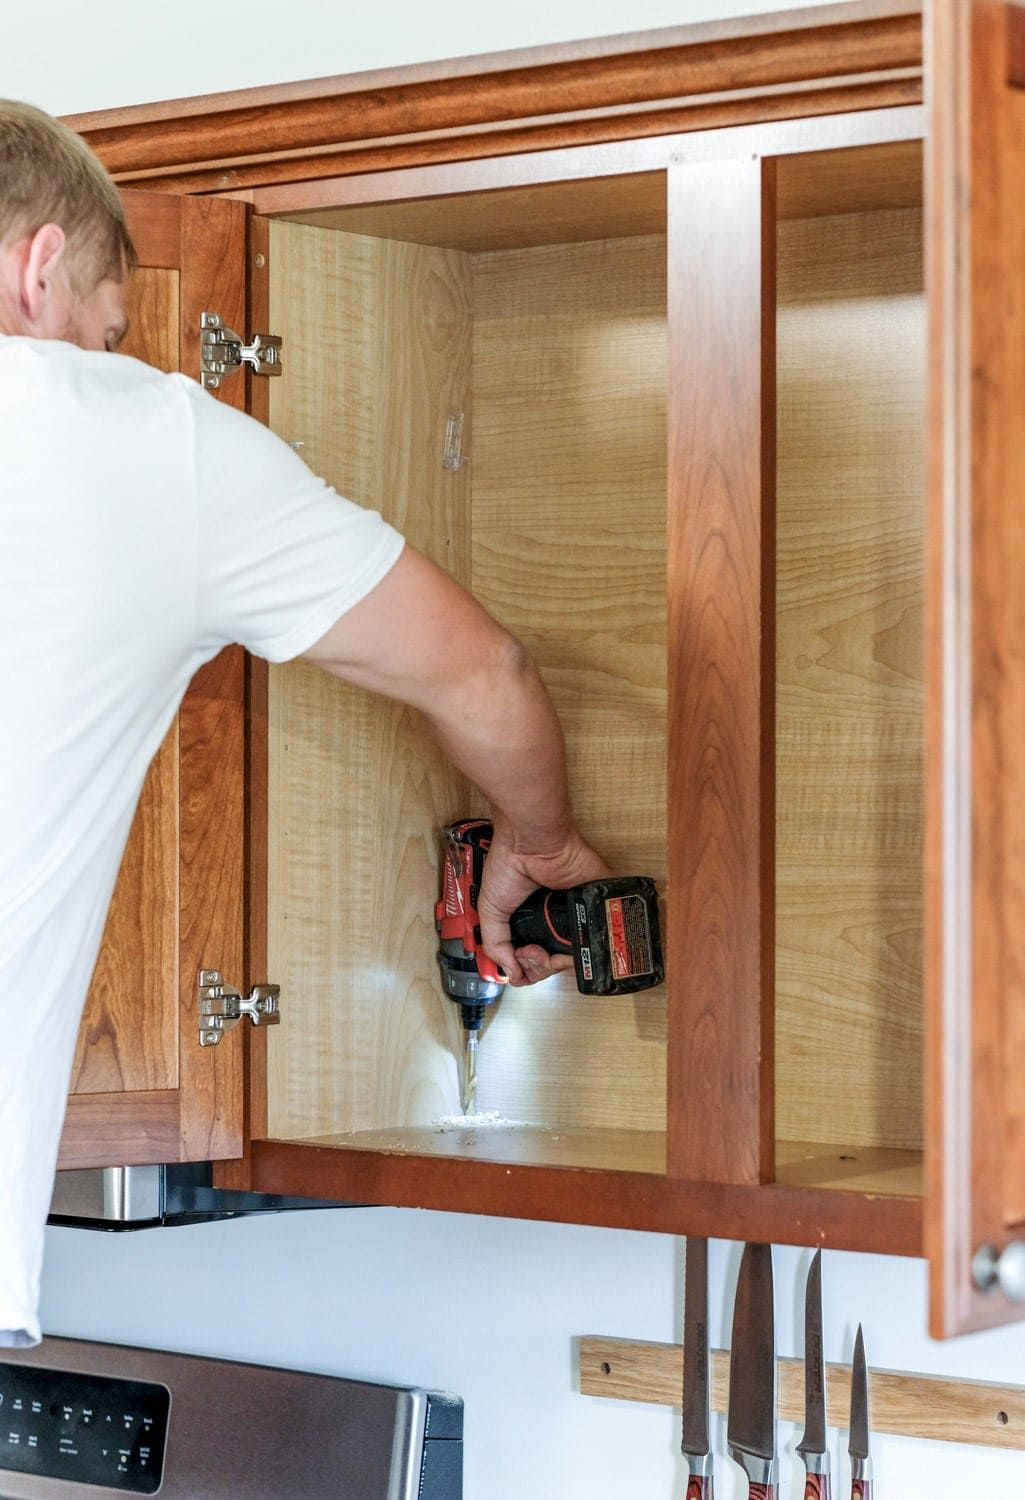 Easy to follow how to guide for installing DIY under and ...